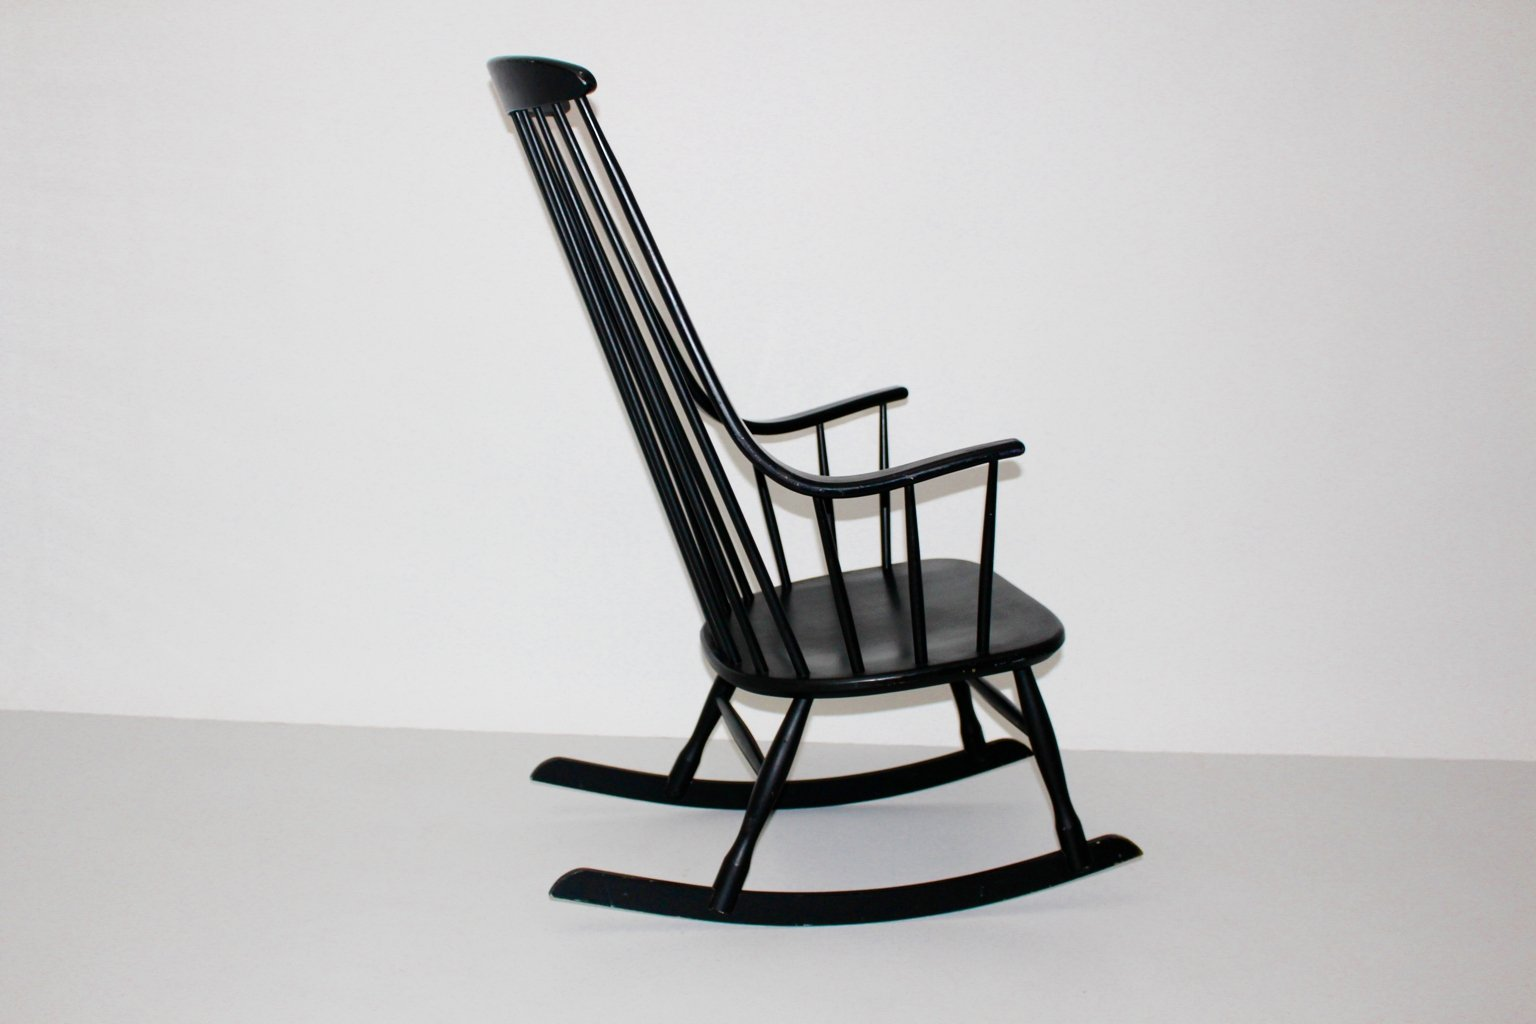 black grandessa rocking chair by lena larsson for nesto 1960s for sale at pamono. Black Bedroom Furniture Sets. Home Design Ideas